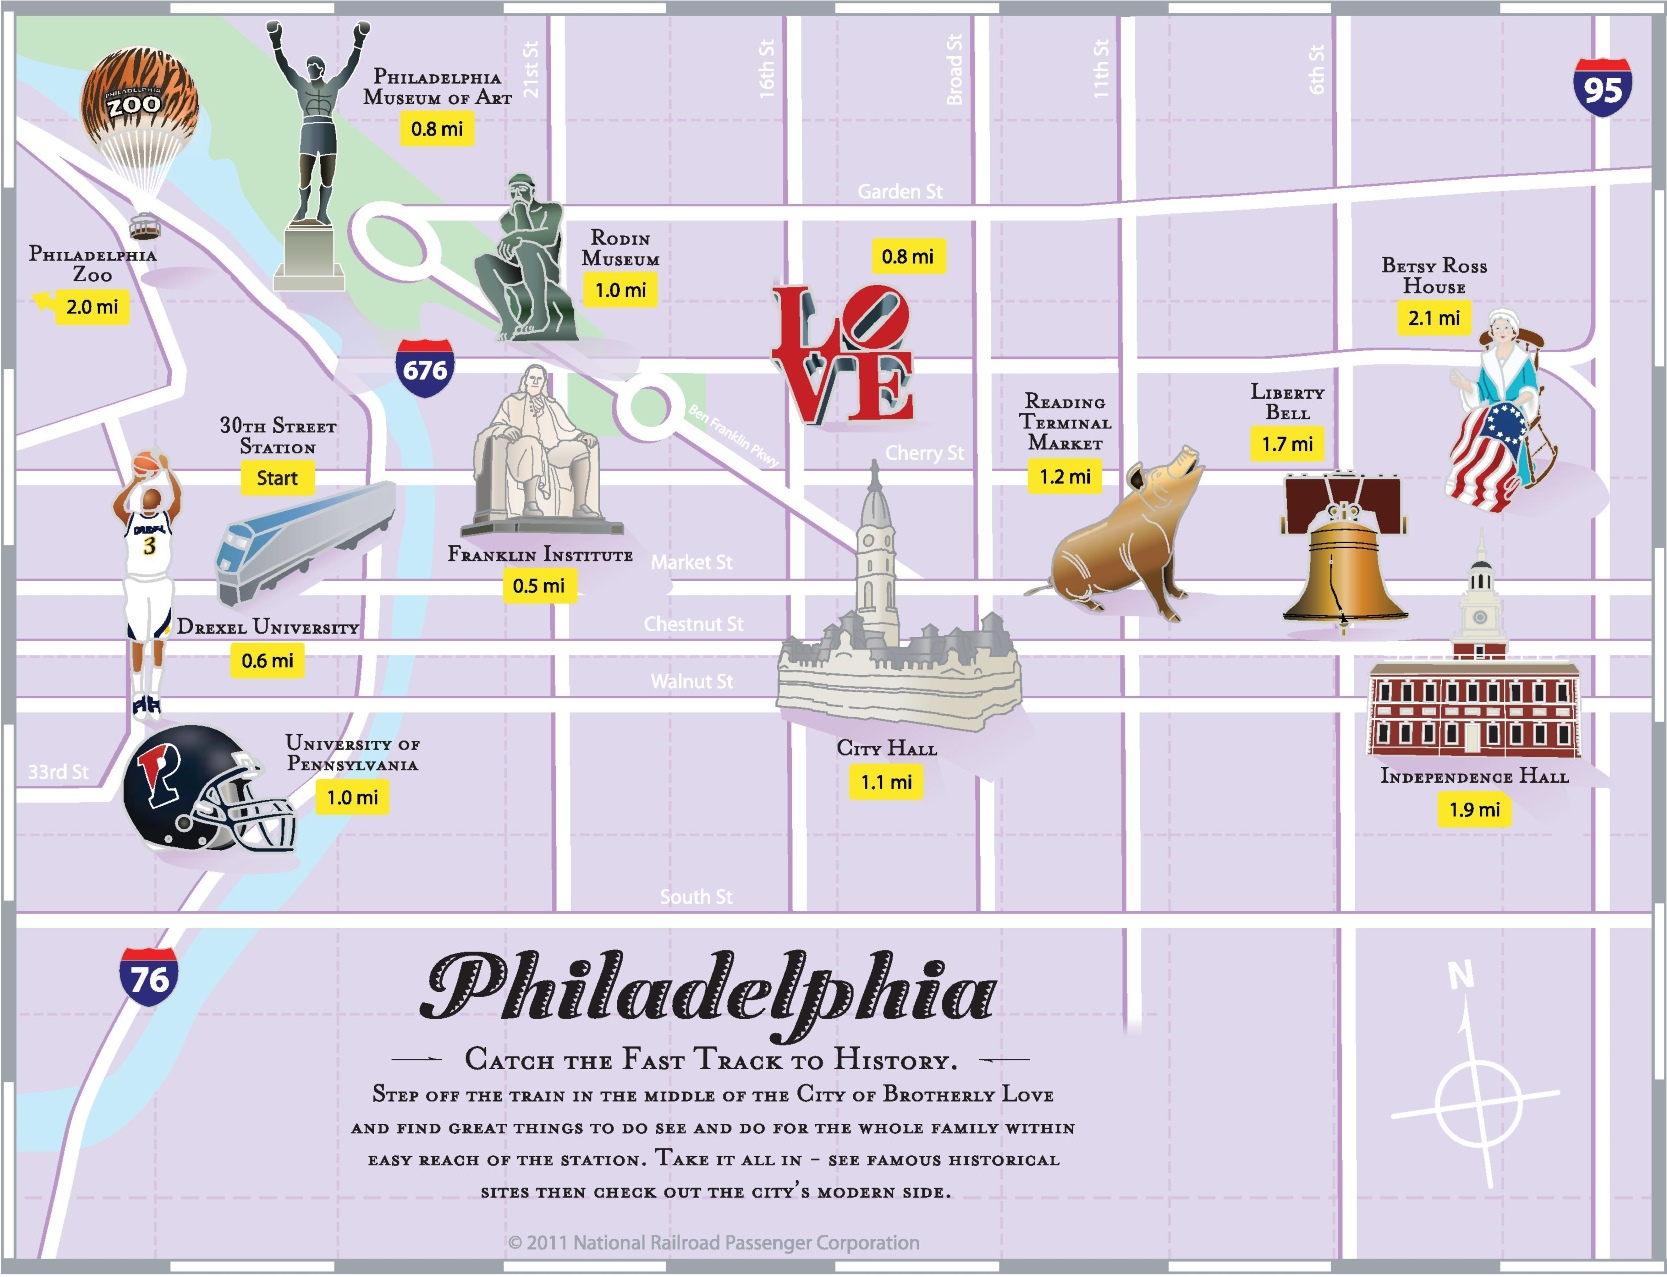 Philadelphia tourist attractions map – Virginia Tourist Attractions Map